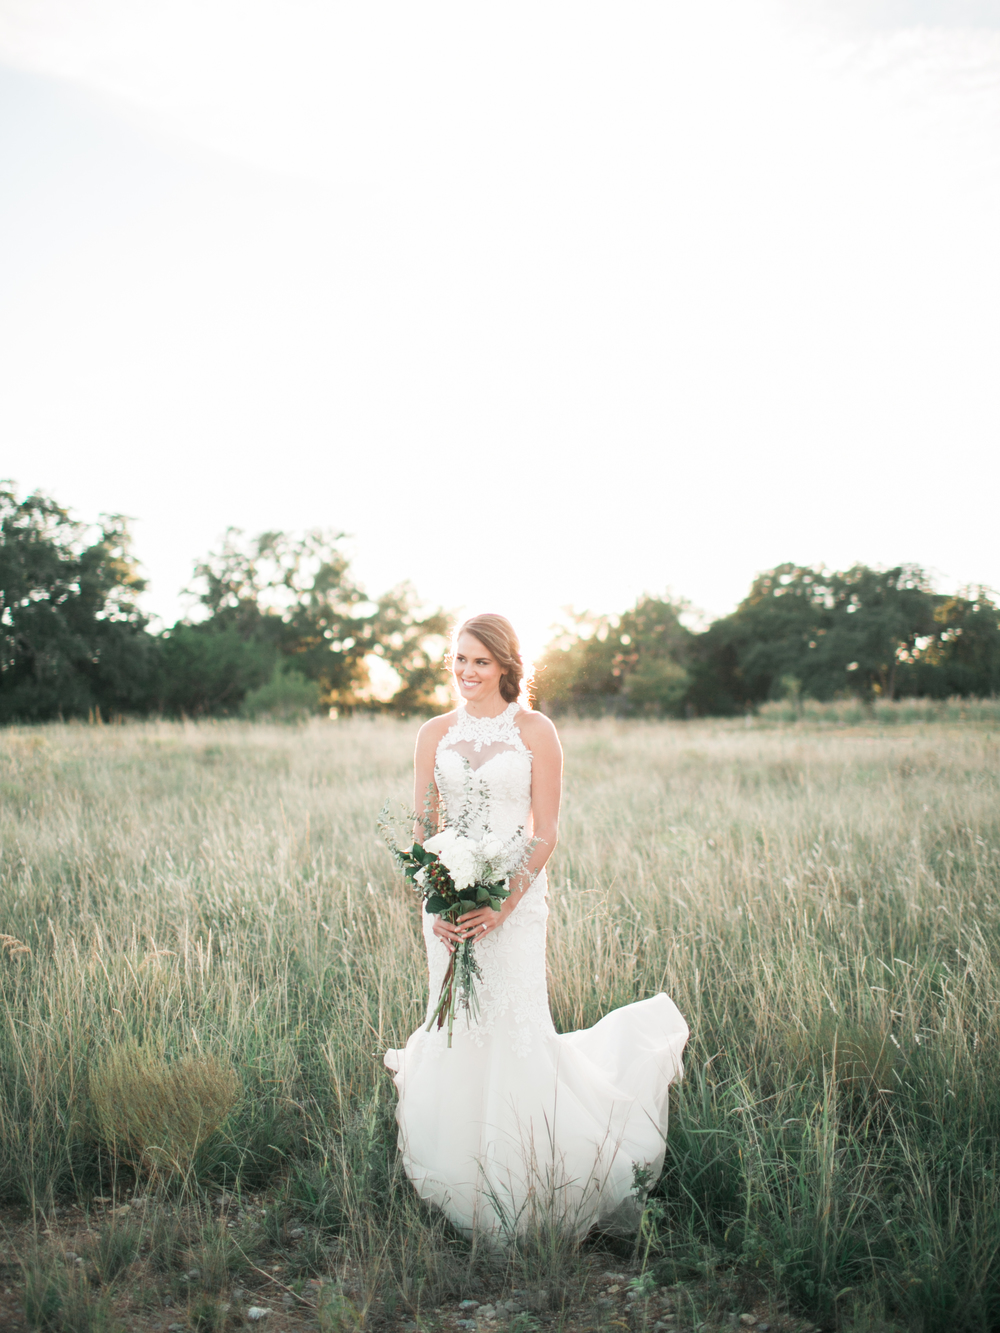 Austin-Bridal-Photographer-Alexa-Prospect-House-24.jpg